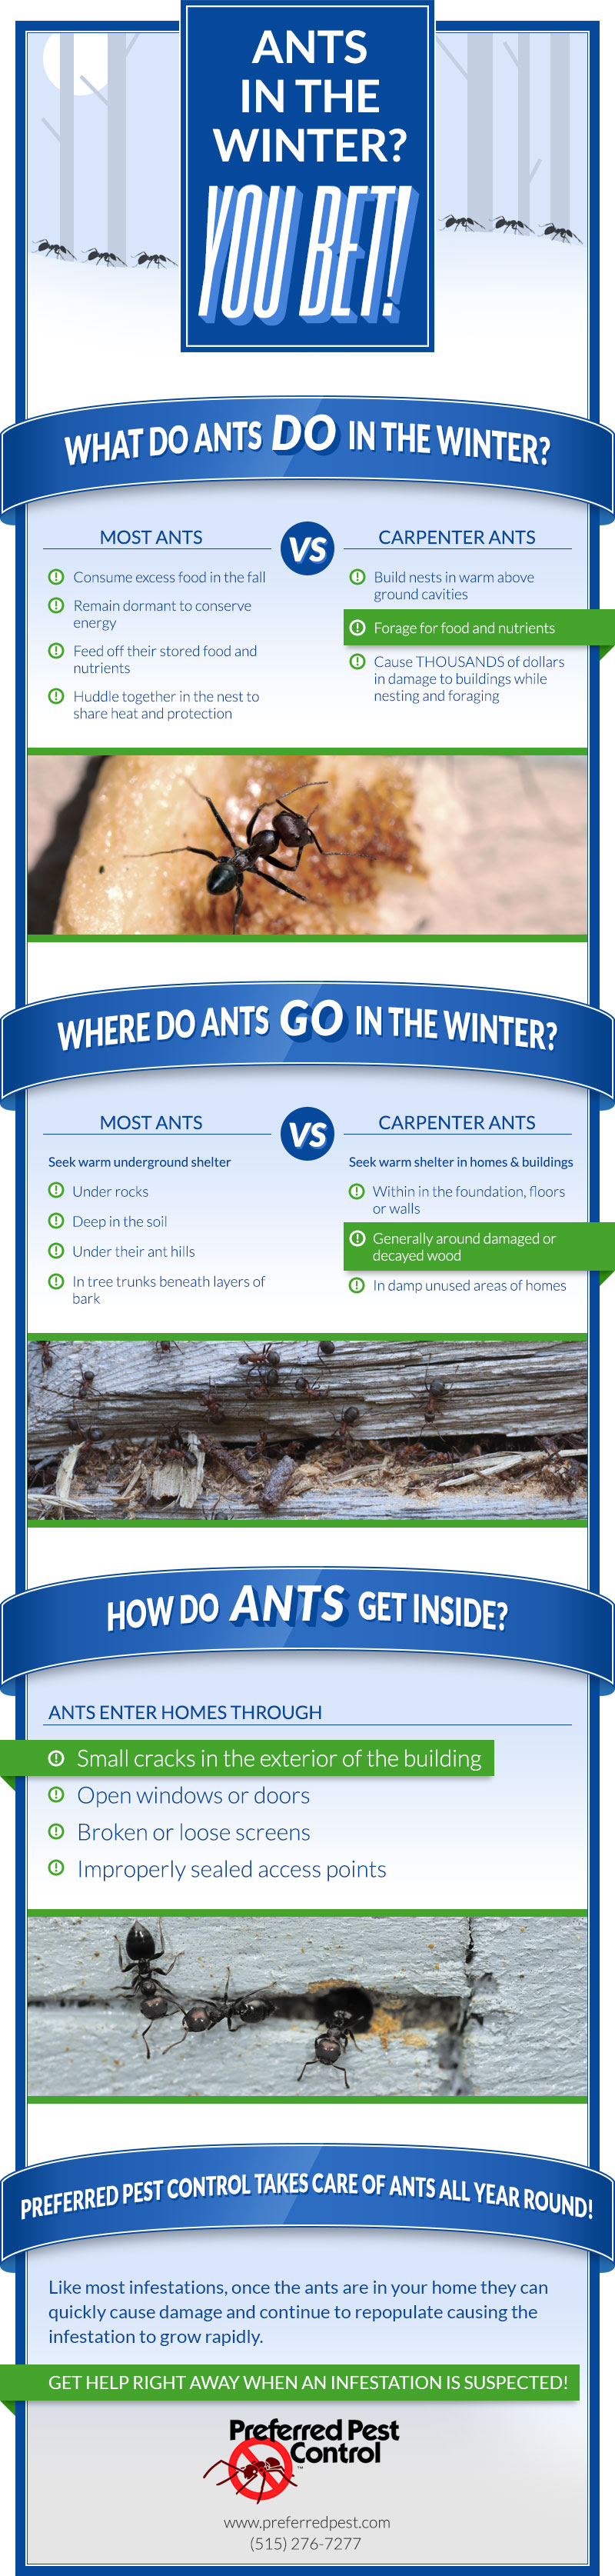 Preferred Pest Control Winter Ants